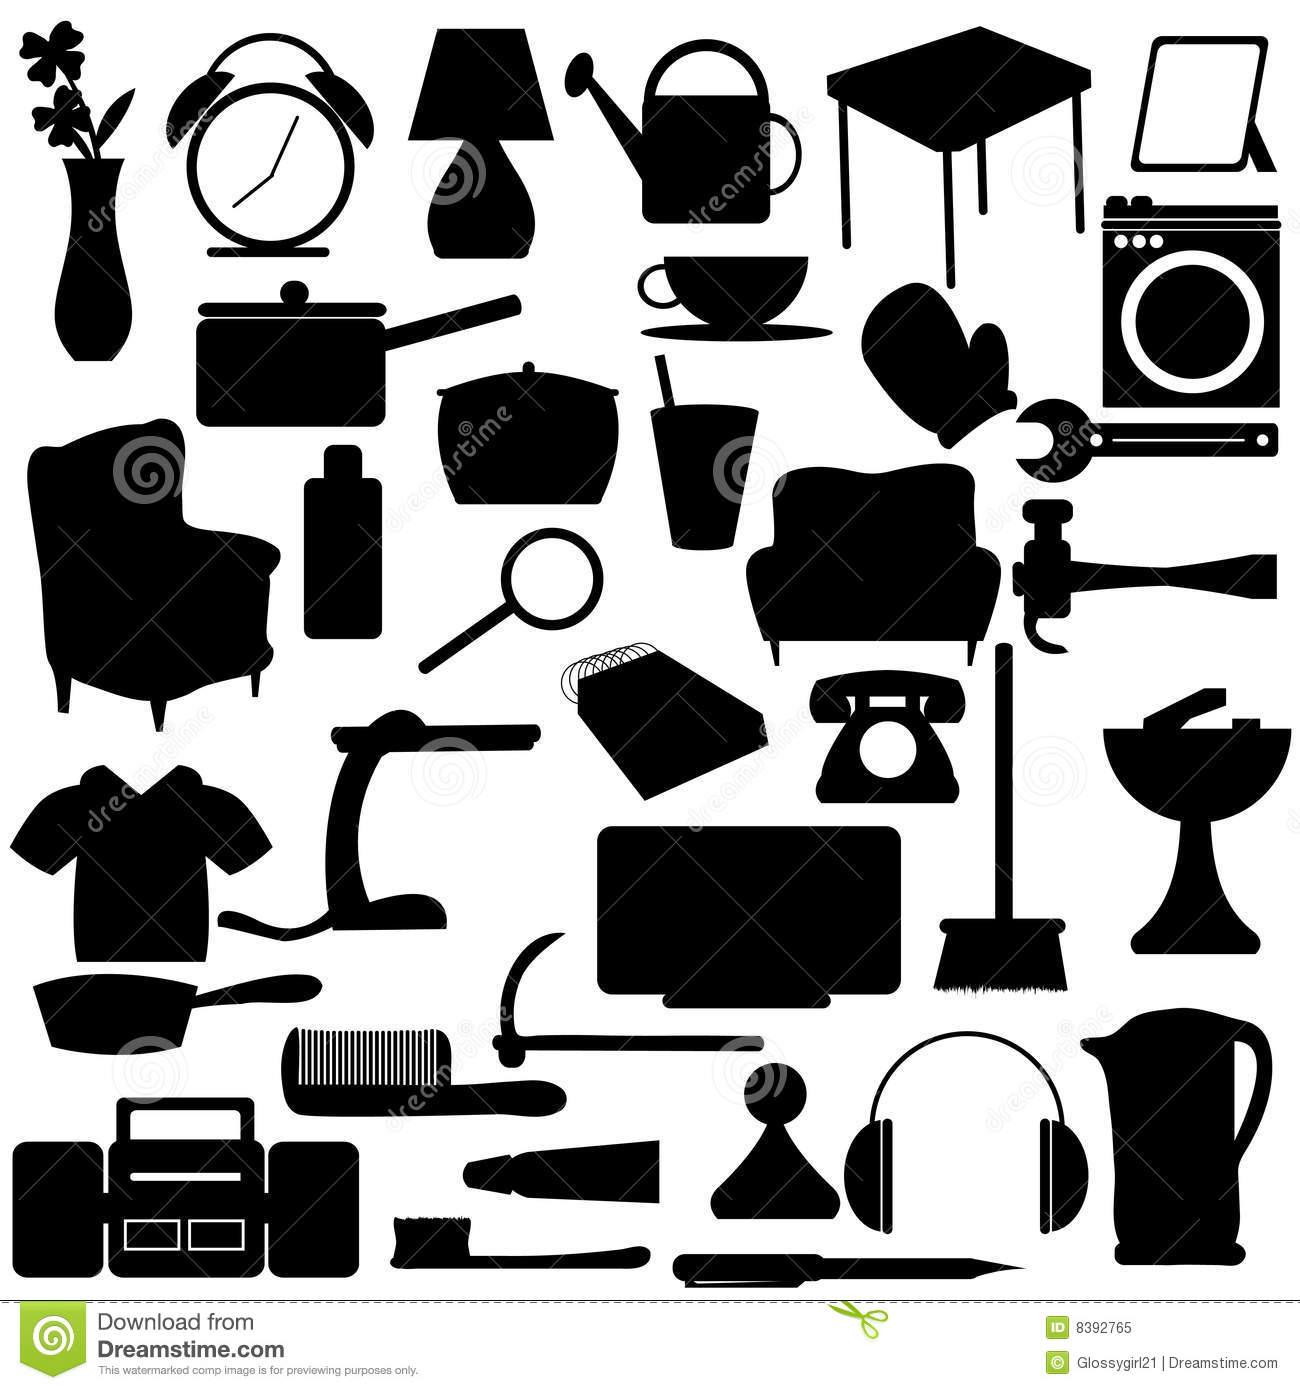 Household Silhouettes Items Royalty Free Stock Photo  Image 8392765